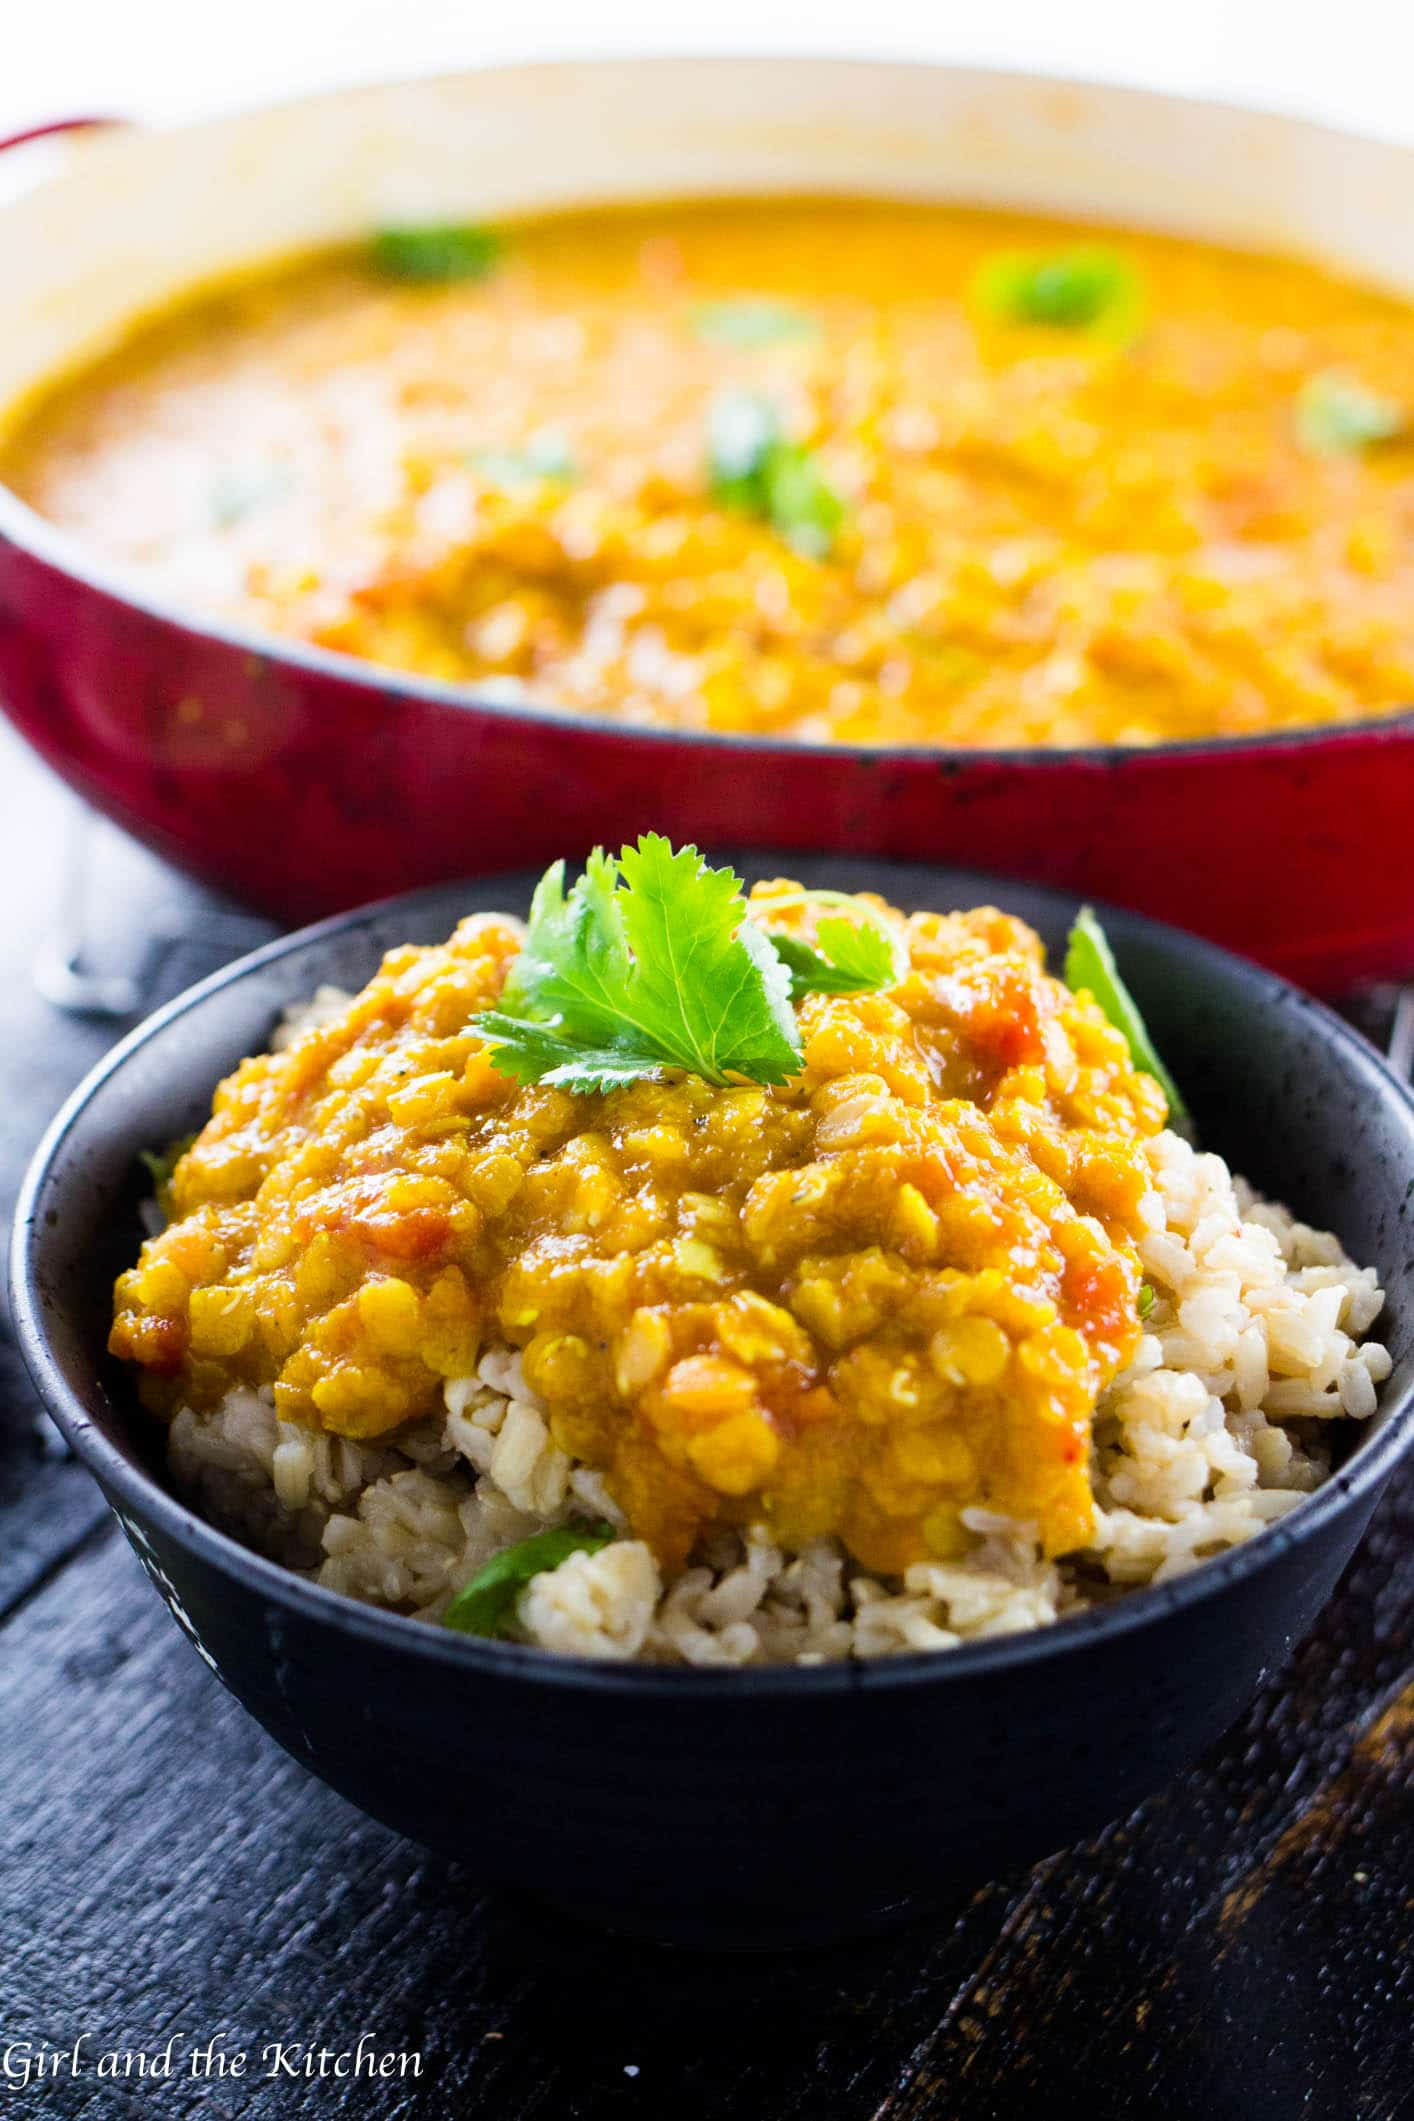 This easy and delicious yellow lentil dal is full of protein and bright flavors! It's great on its own or served over fragrant Basmati rice for a quick and healthy mid-week meal!